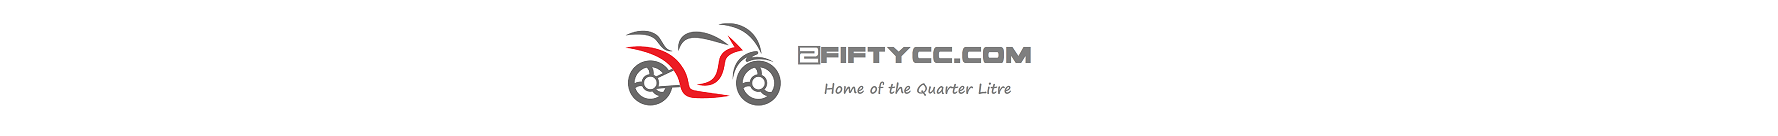 2FIFTYCC.COM - Home of the Quarter Litre